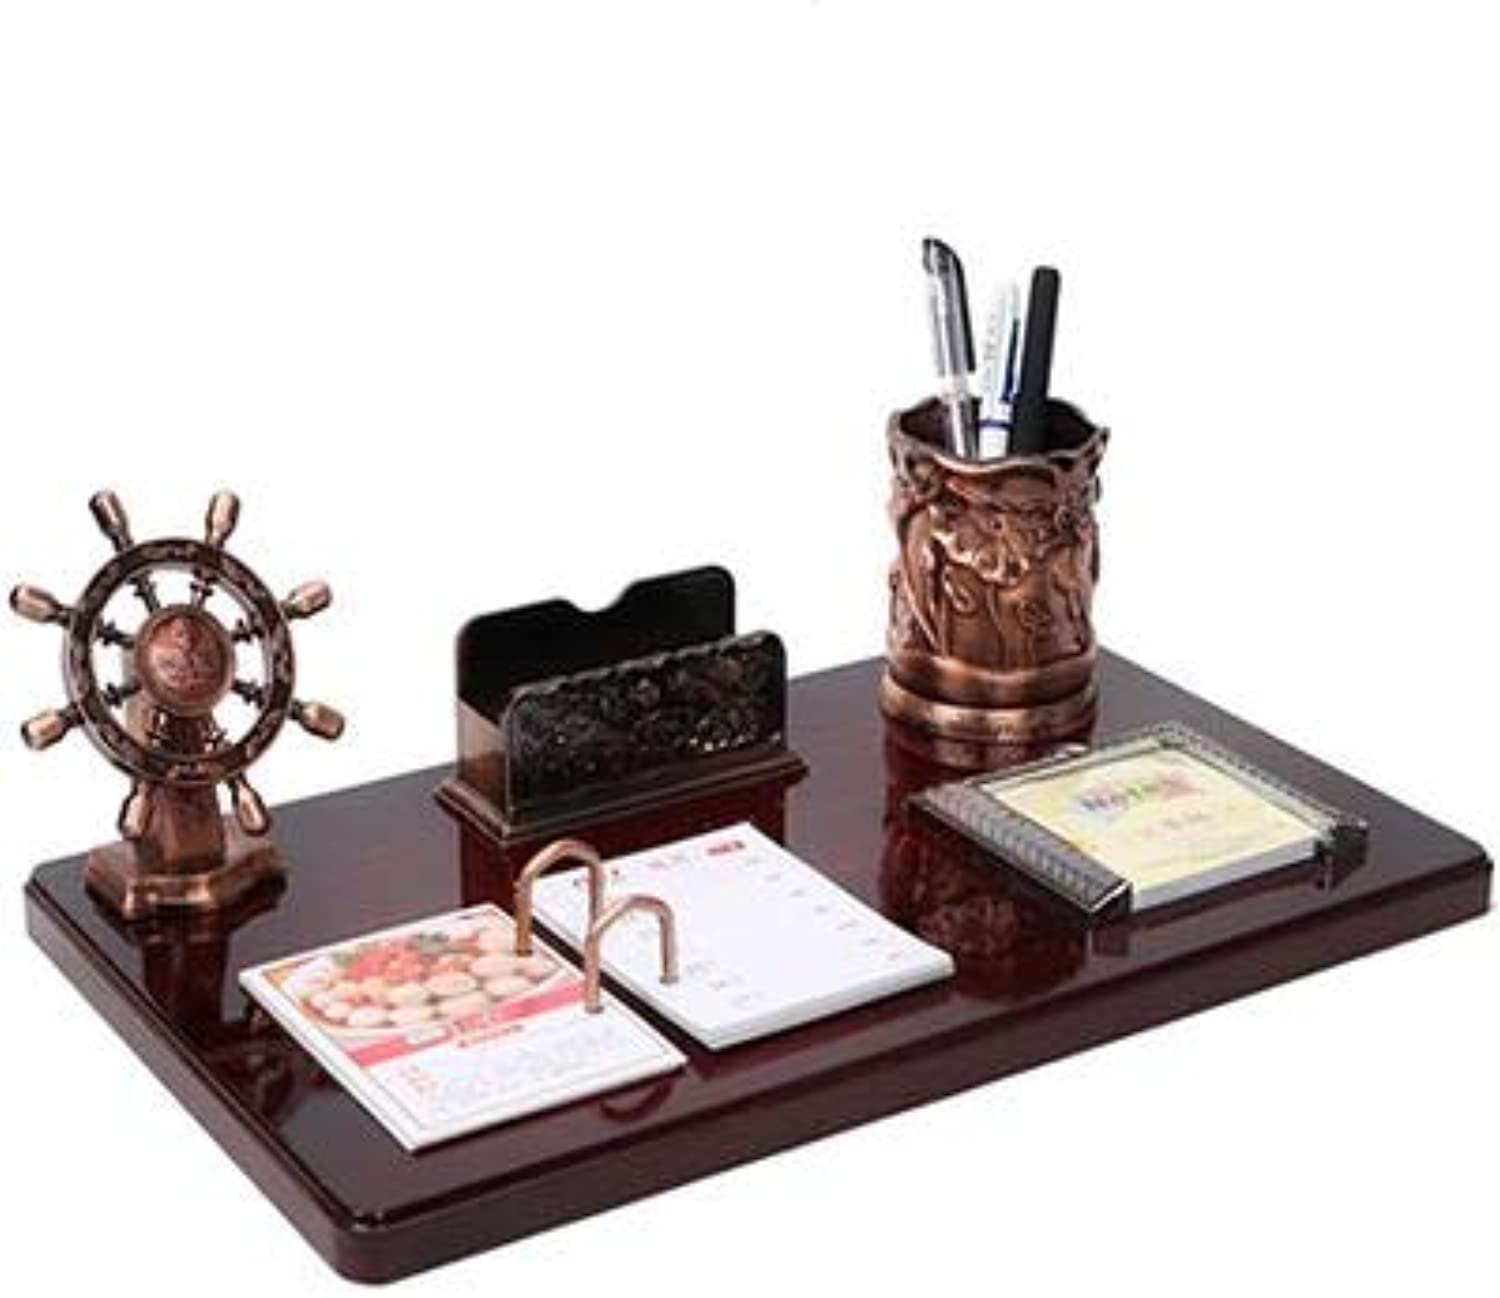 Decoration of Pencil Holder for Desk Writing Desk with Creative Gifts,A Smooth Sailing (4024Cm)